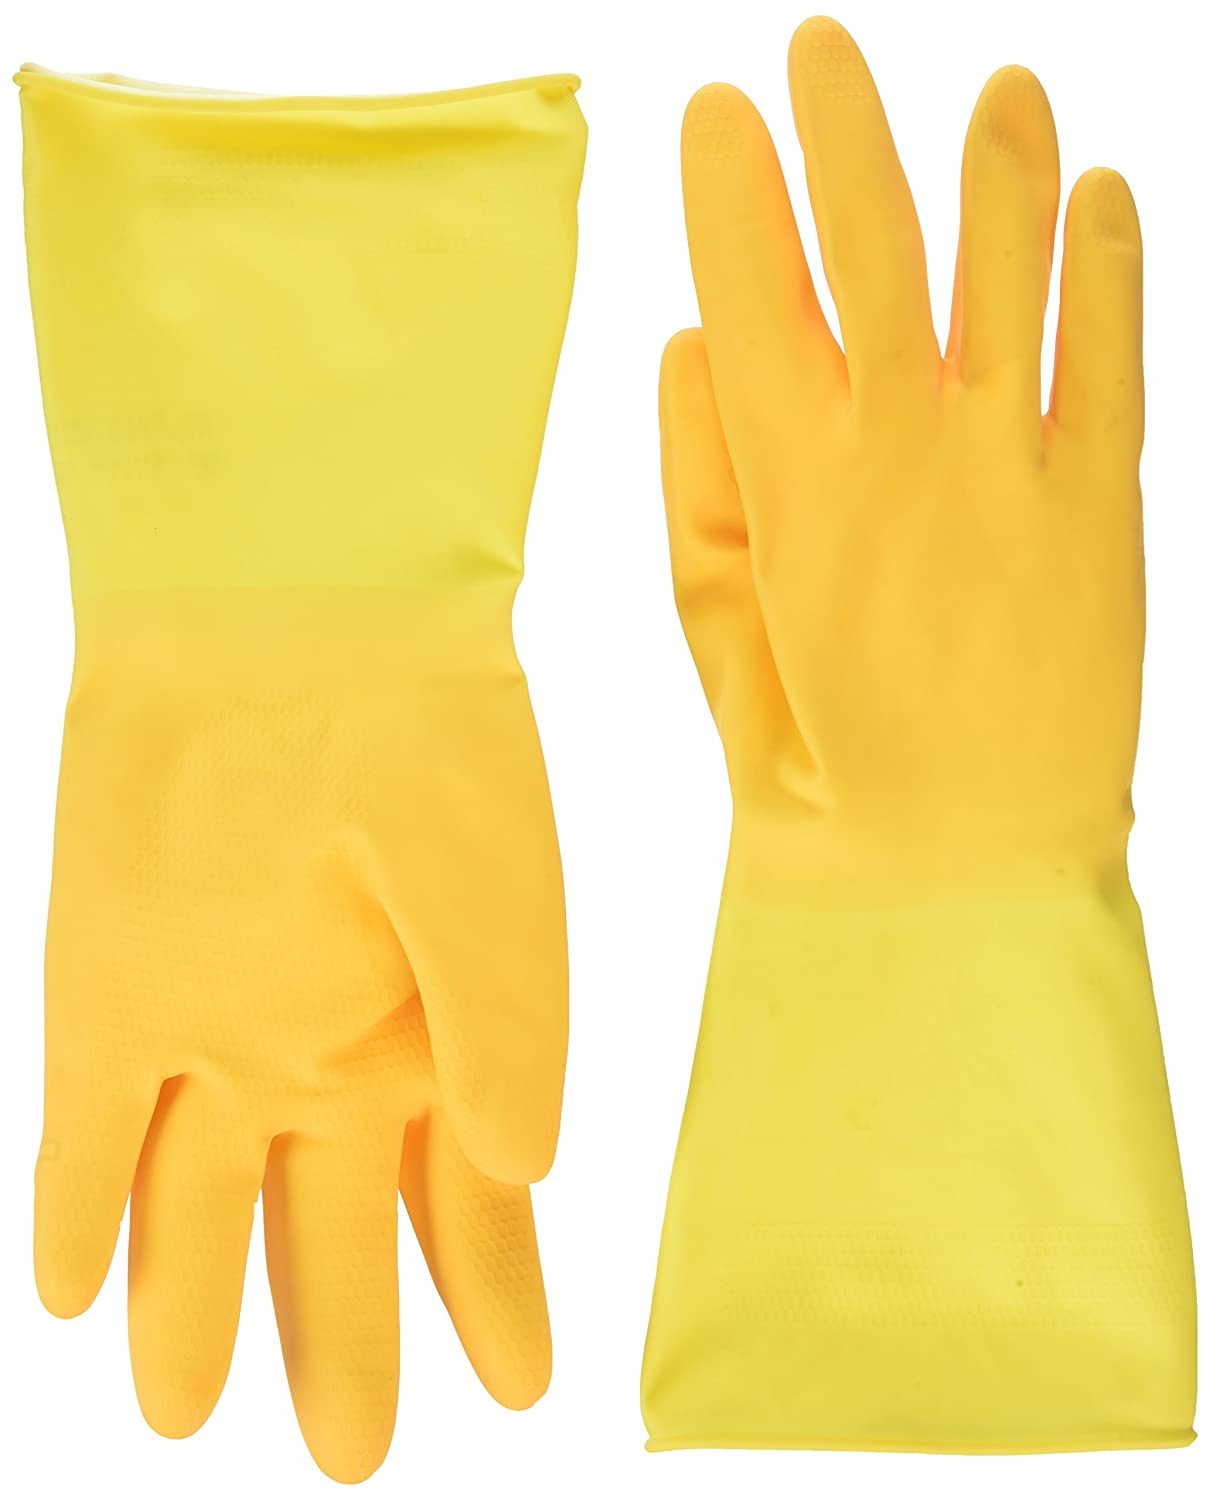 Marigold Medium Kitchen Gloves (Pack of 6) EH Booth & Co Ltd